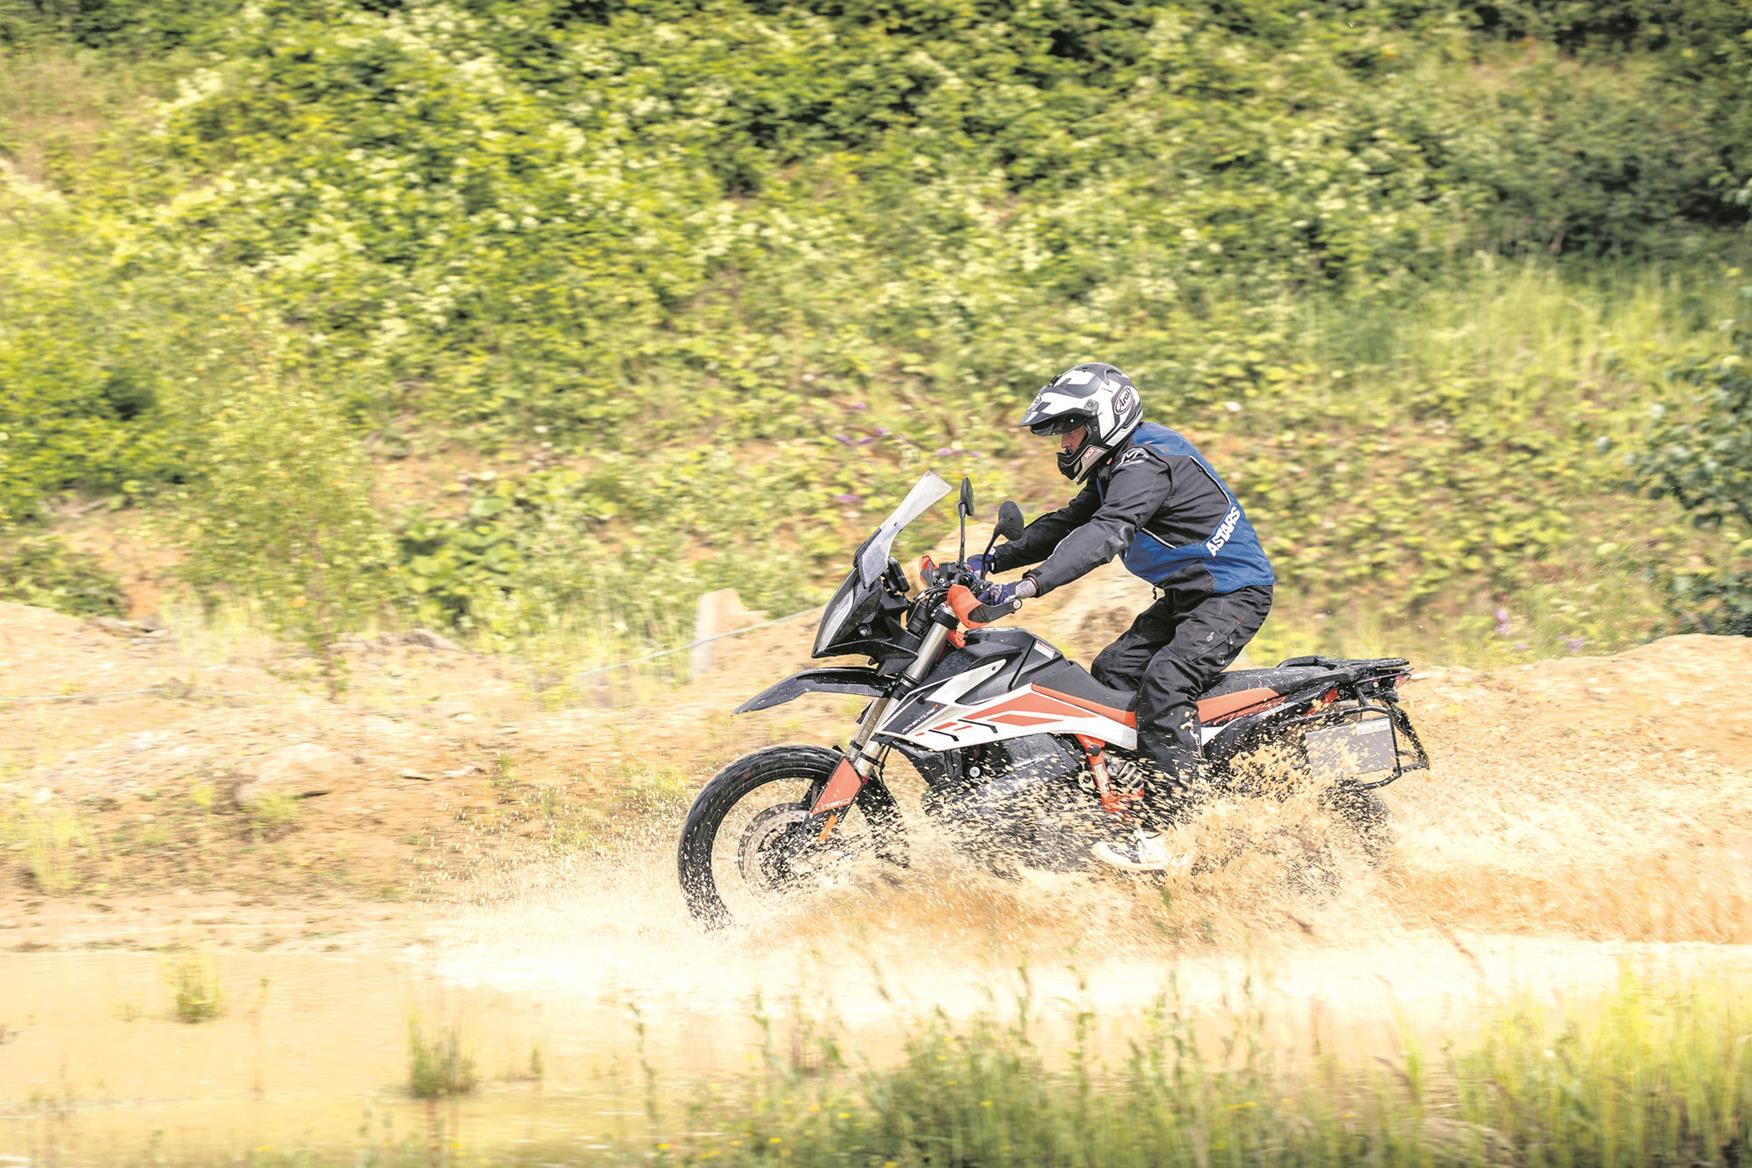 KTM 790 Adventure R hits the water